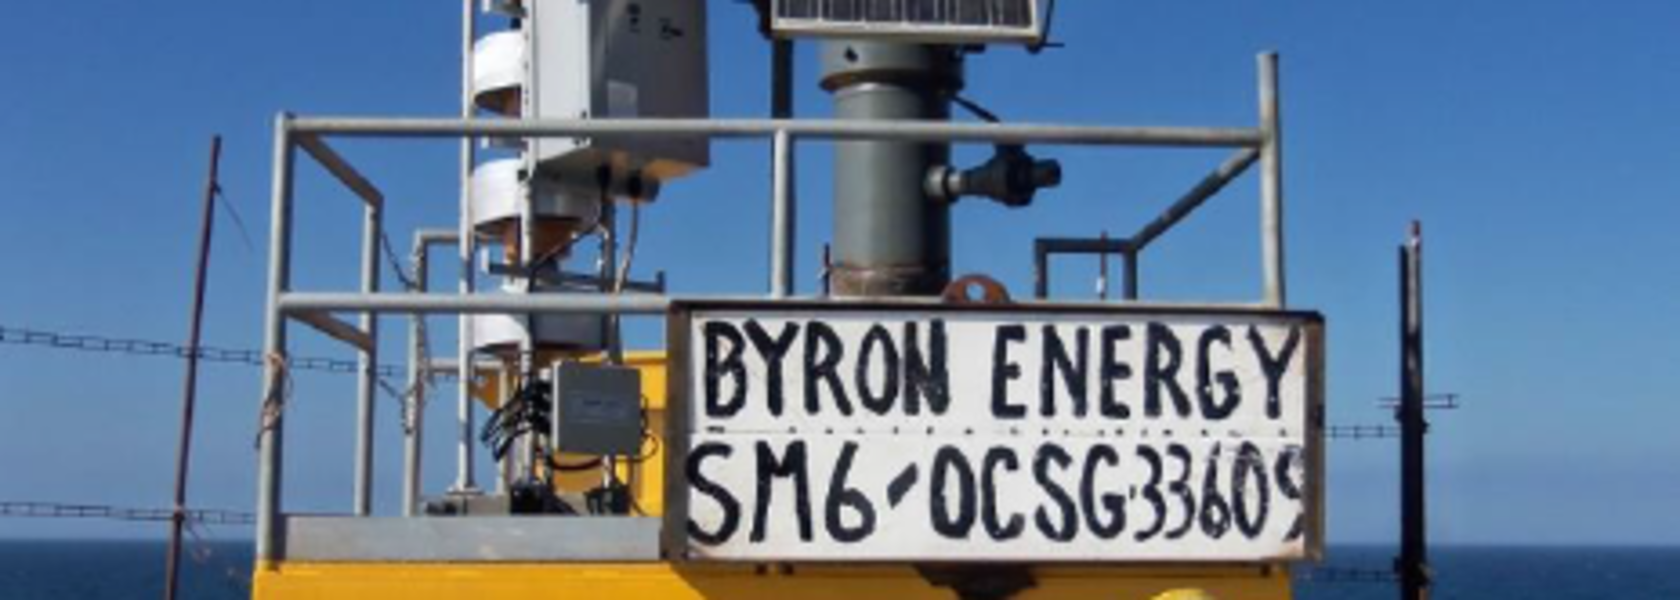 Byron and Otto clear path to SM71 production - Energy News Bulletin